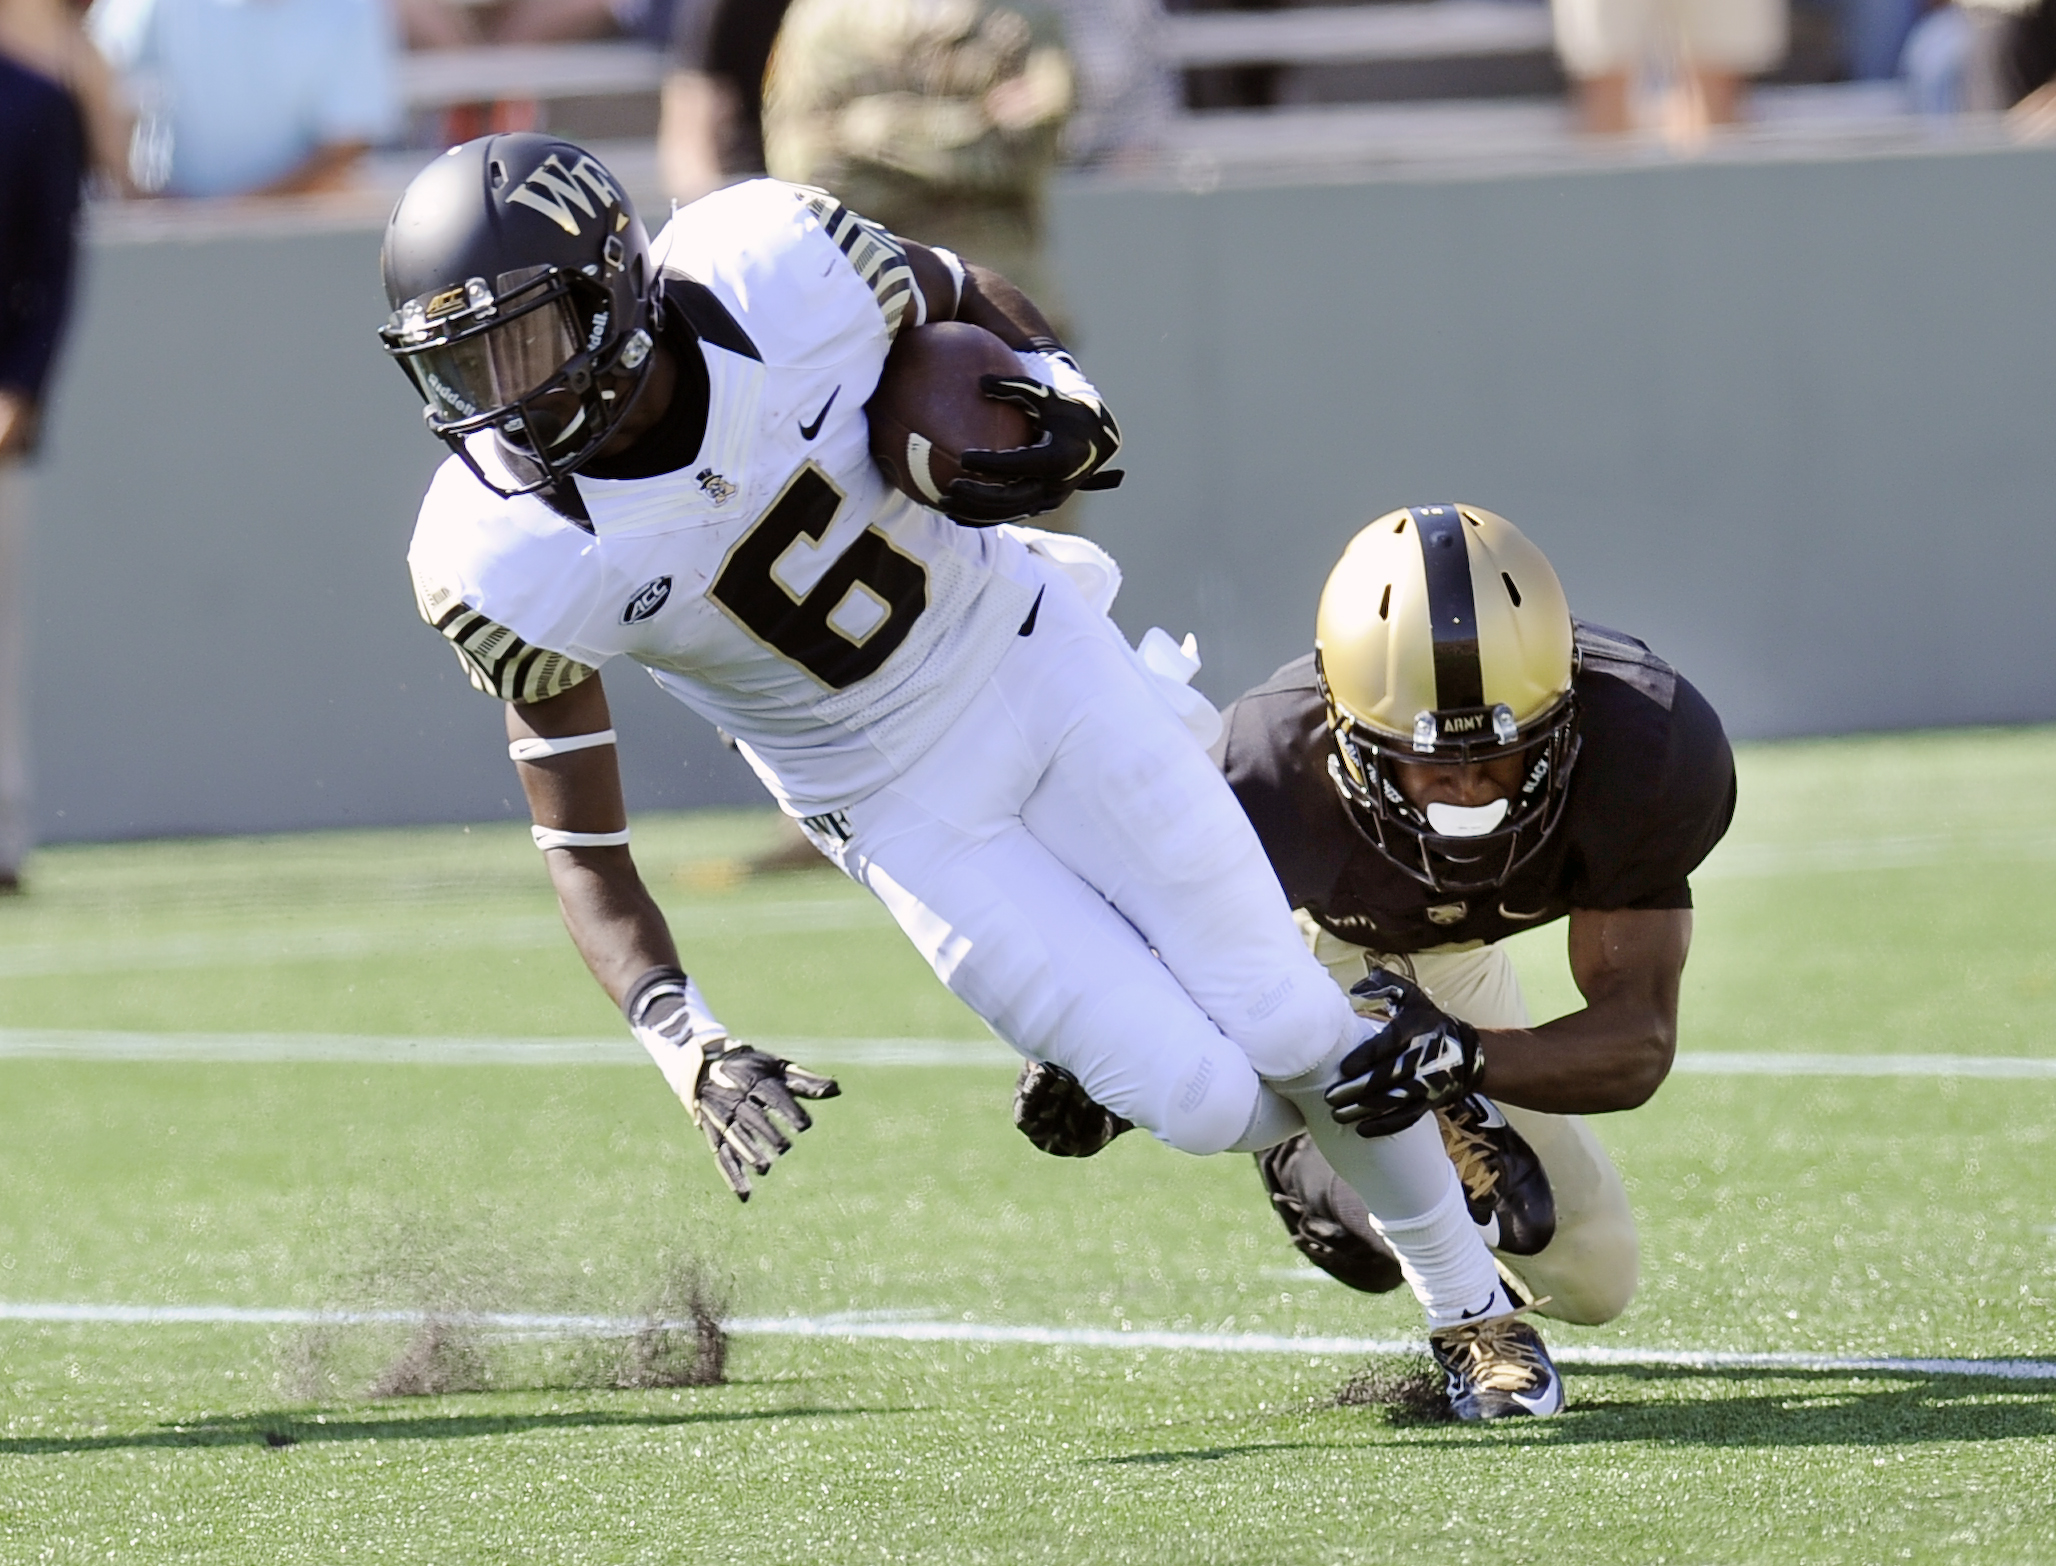 Wake Forest's Tabari Hines (6) is tackled by Army's Marcus Hyatt during the second half of an NCAA college football game on Saturday, Sept. 19, 2015, in West Point, N.Y. (AP Photo/Hans Pennink)